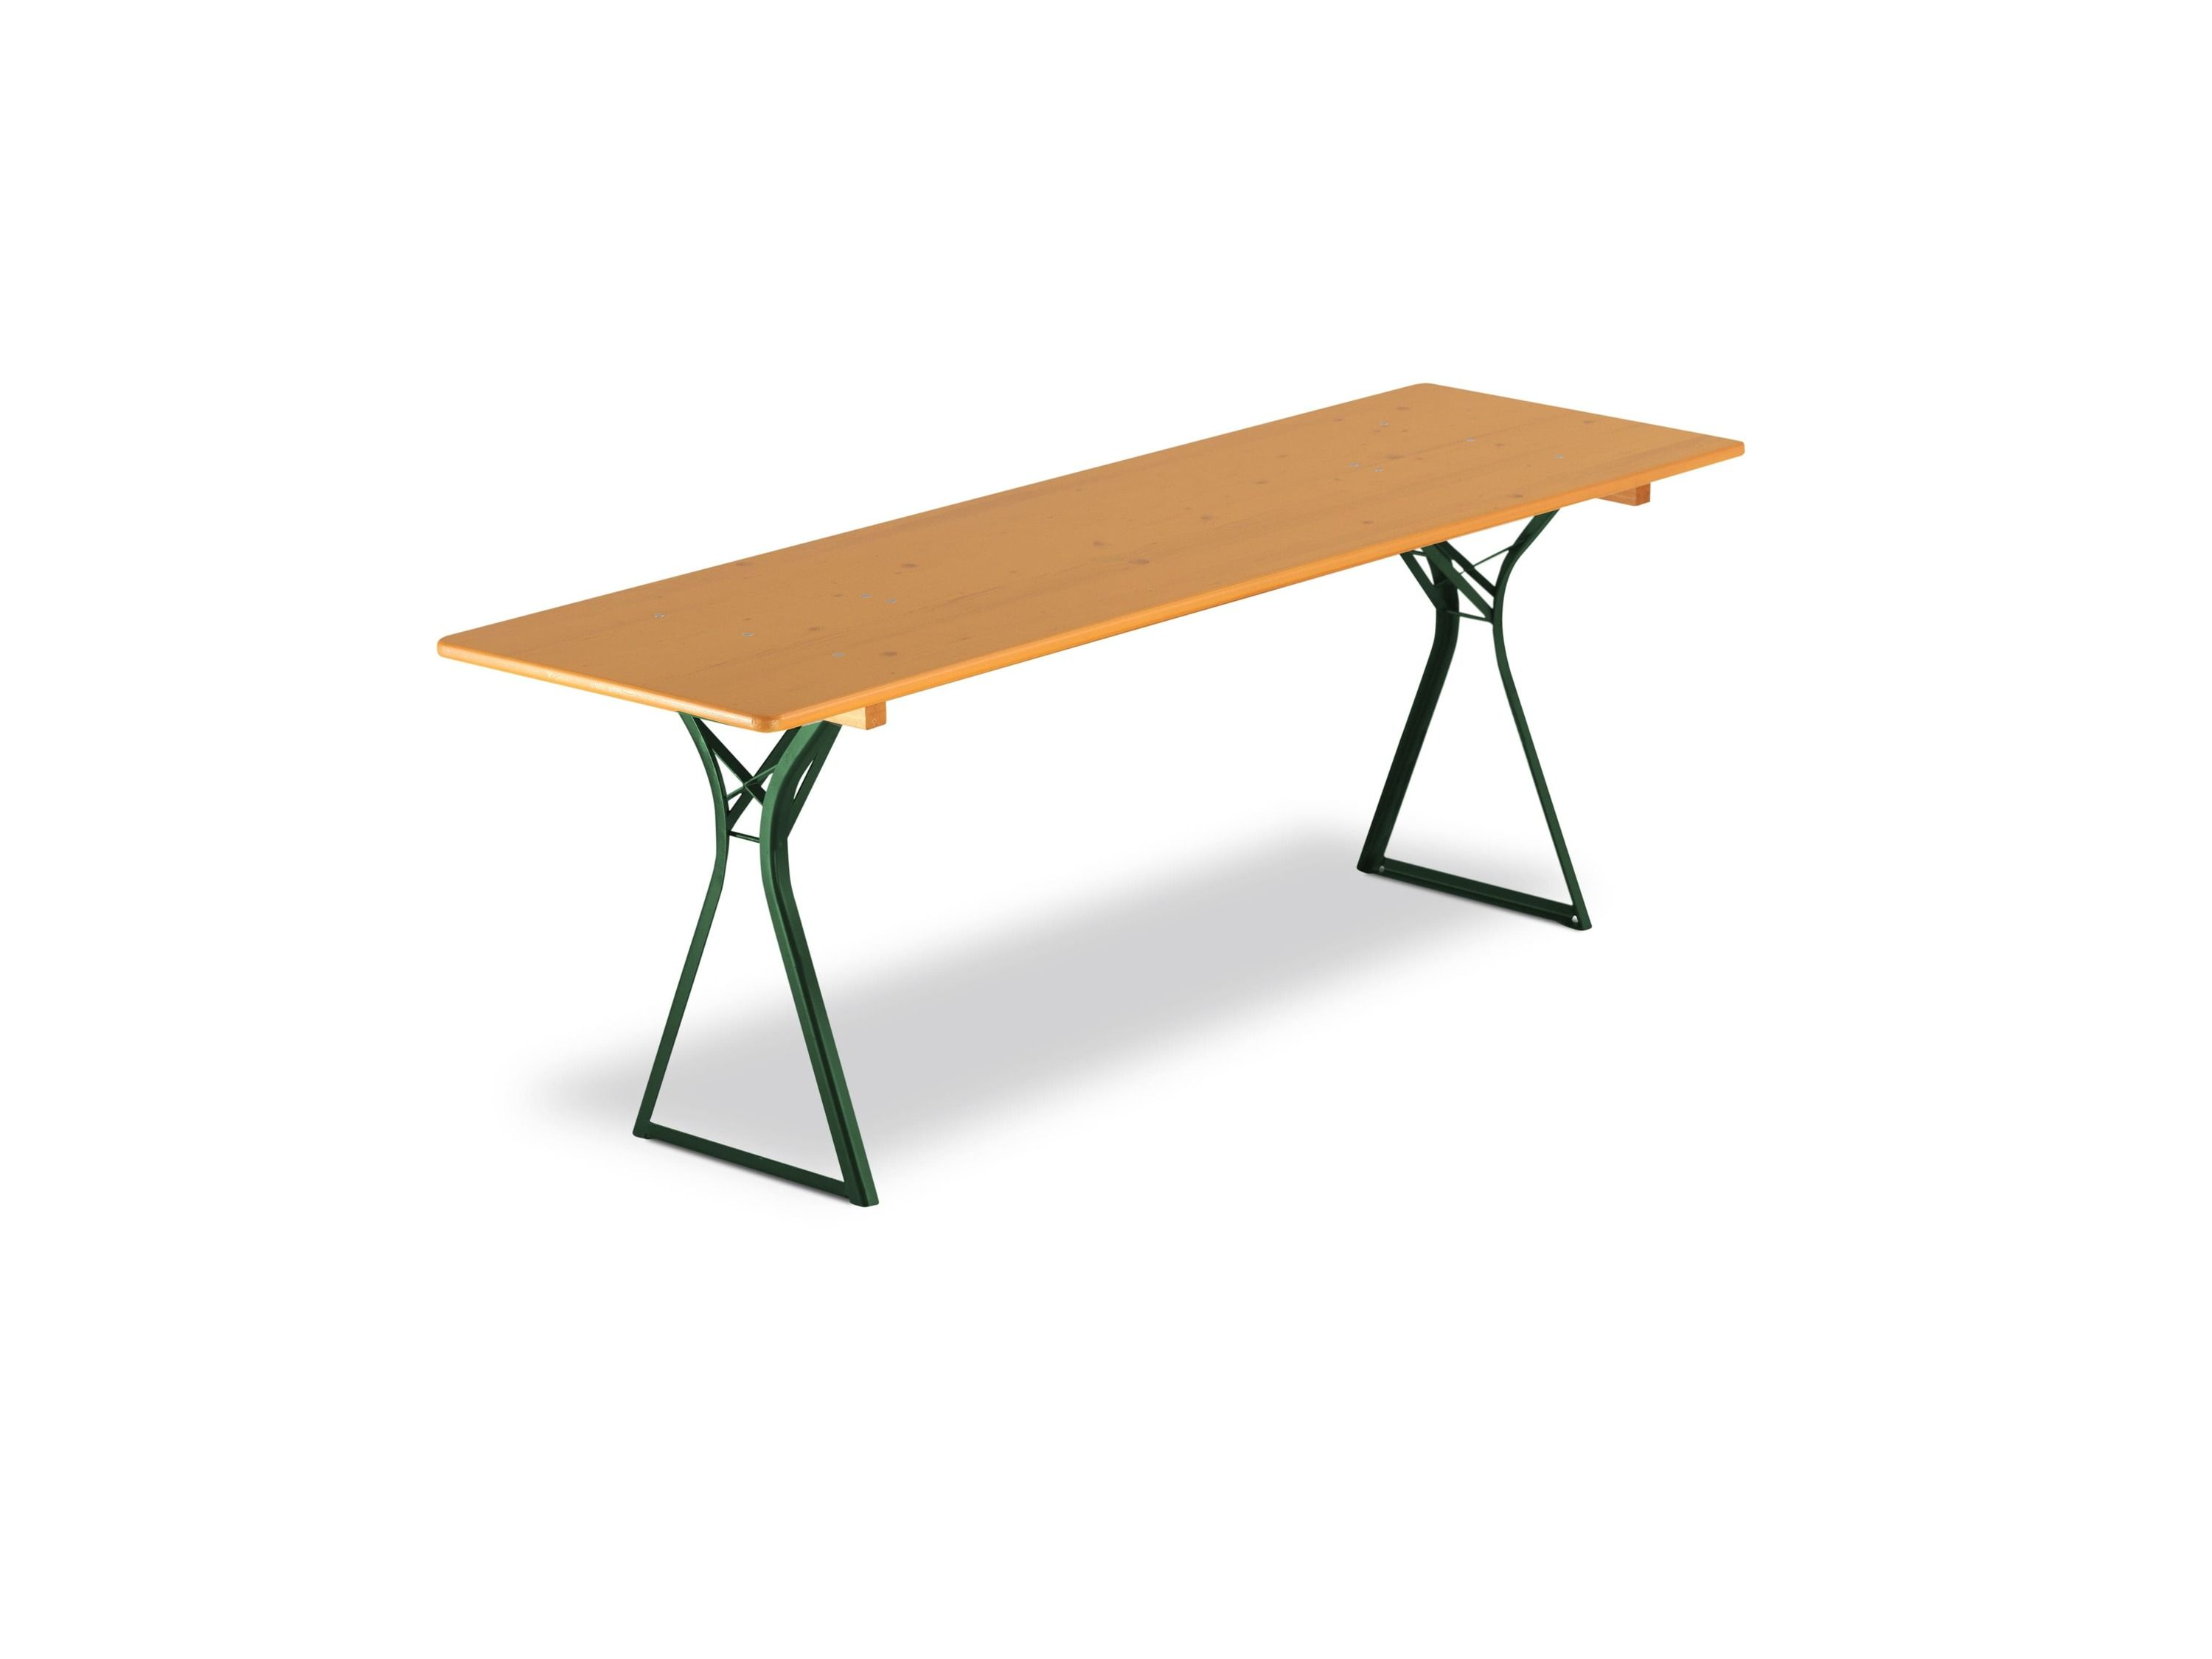 <p>Table & Bench Sets – Oktoberfest Set – Table</p> <p>2 options available. 2200mm x 670mm / 2200mm x 500mm.</p> <p>Comfortable Oktoberfest Table.</p>